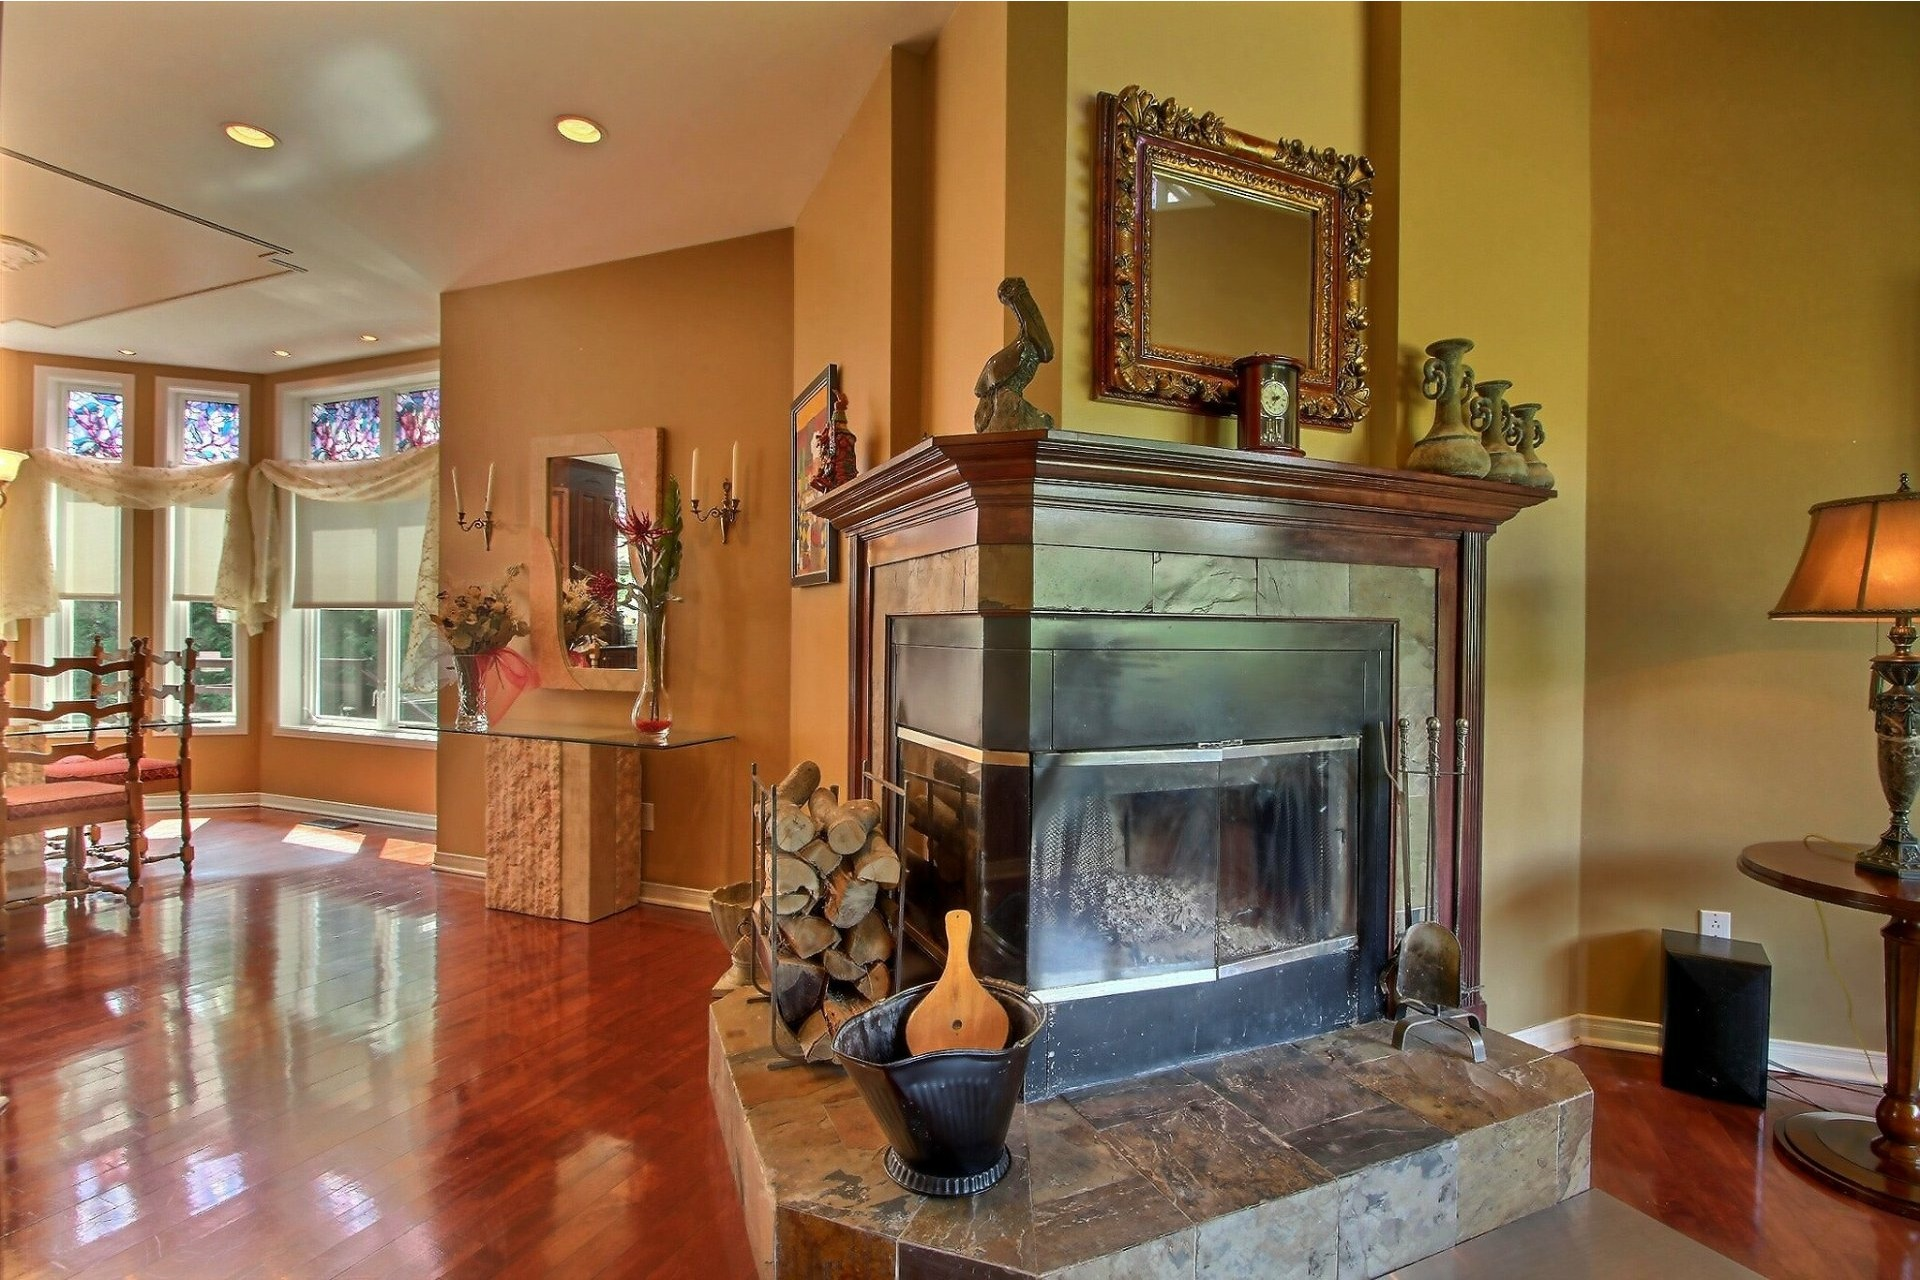 image 5 - House For sale Rawdon - 16 rooms